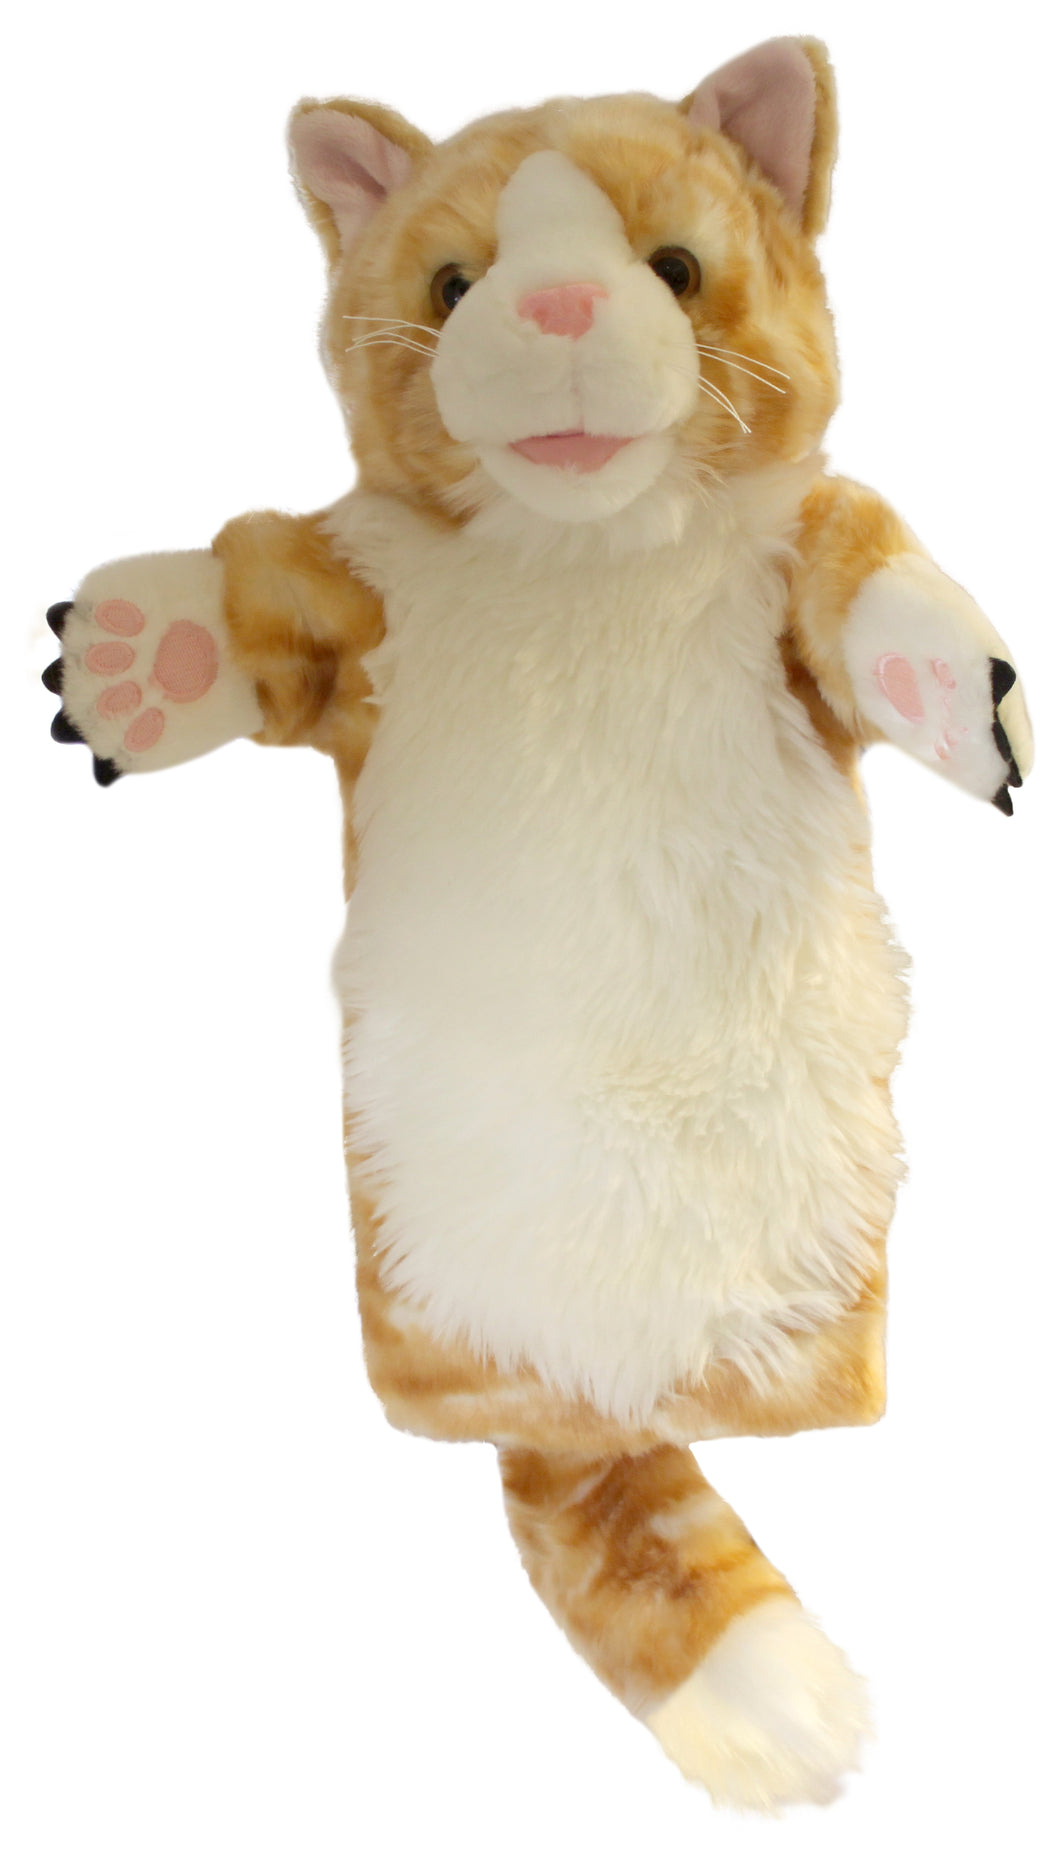 P354-PC006014-marionnette-Chat-Roux-The-Puppet-Company-Long-Sleeved-Glove-Puppets